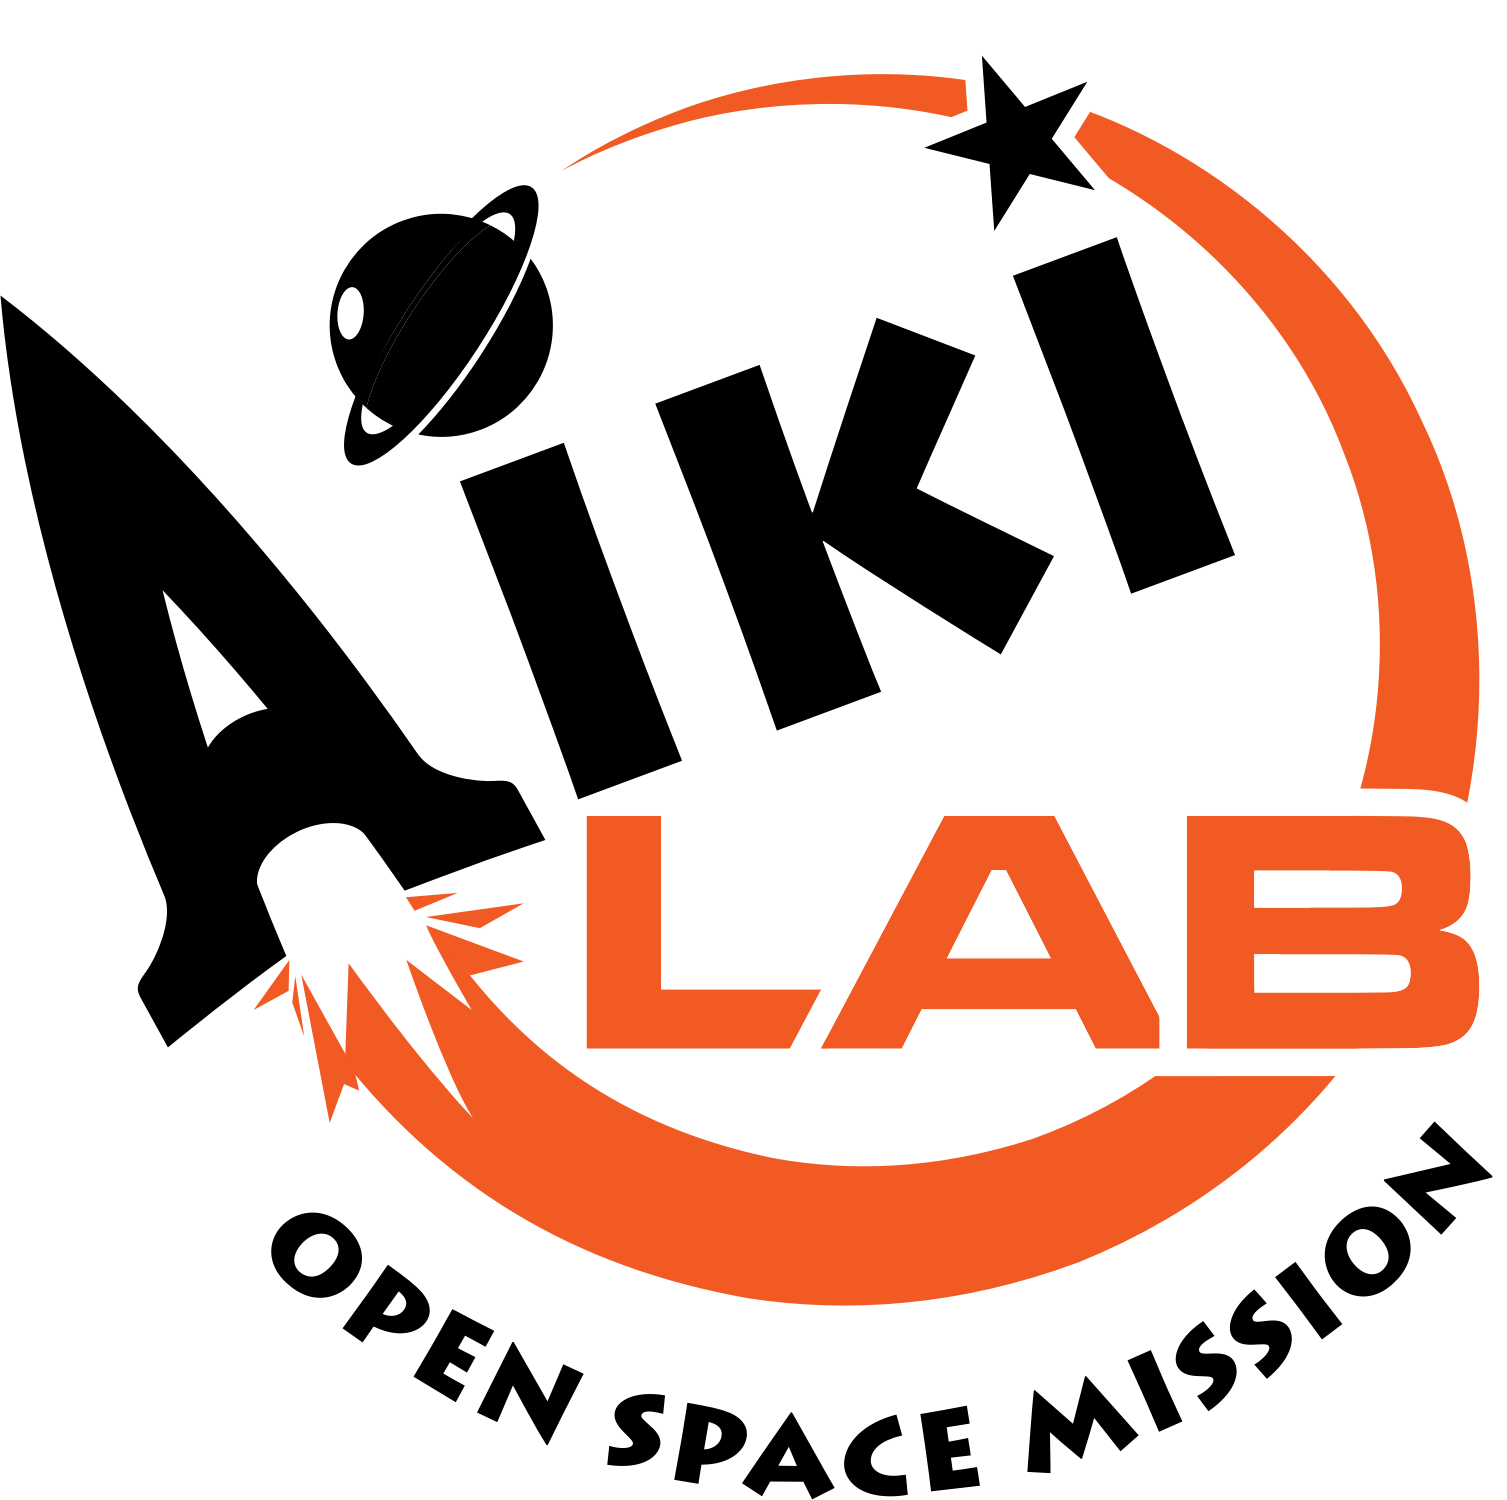 Galaxy clipart space mission. Aiki lab open icons